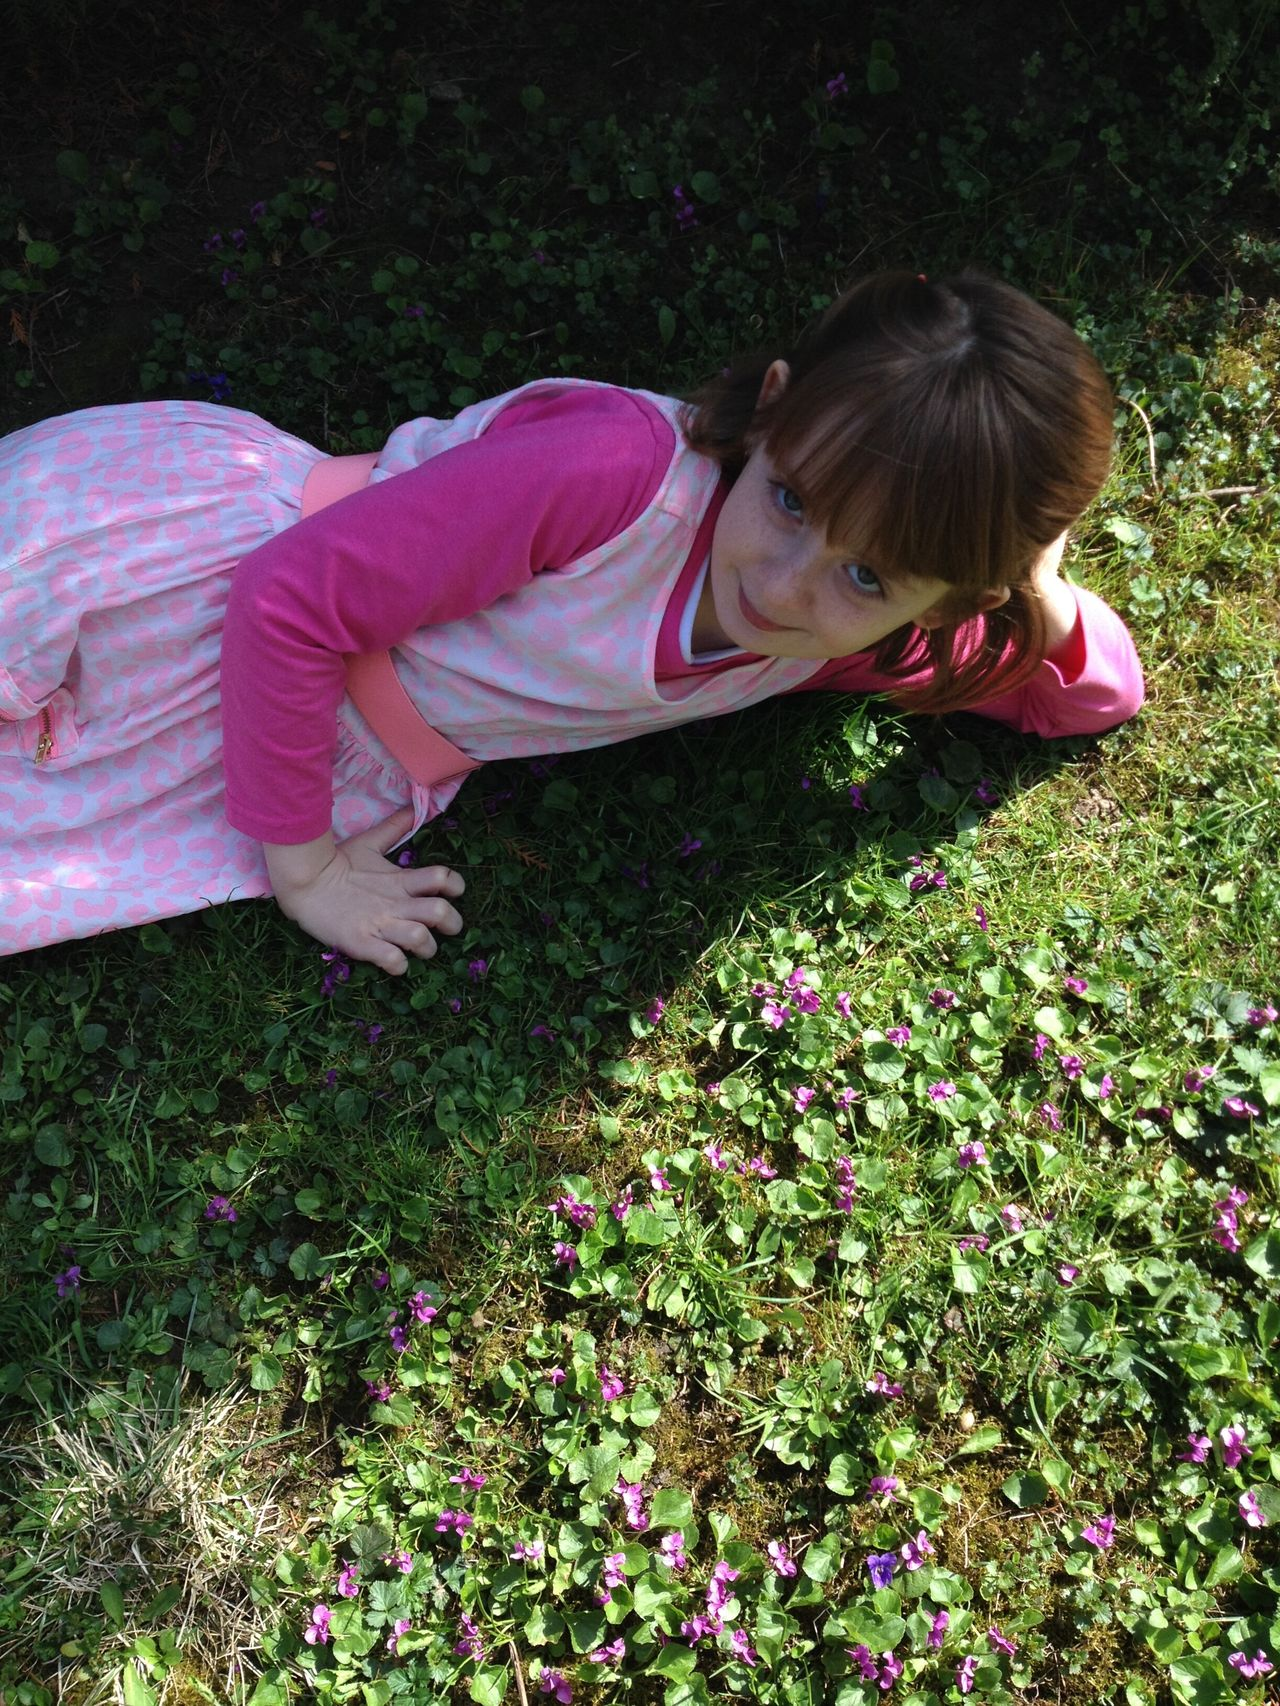 One Girl Only One Person Casual Clothing Child Pink Color Childhood Outdoors Violet Flowers Pink Dress Freckleface Grass Playing Looking At Camera Spring Madame Lady Rebel Freckle Girl Power Pink Dress❤ Violets Violet Flower Laying In The Grass Cute Millennial Pink EyeEmNewHere